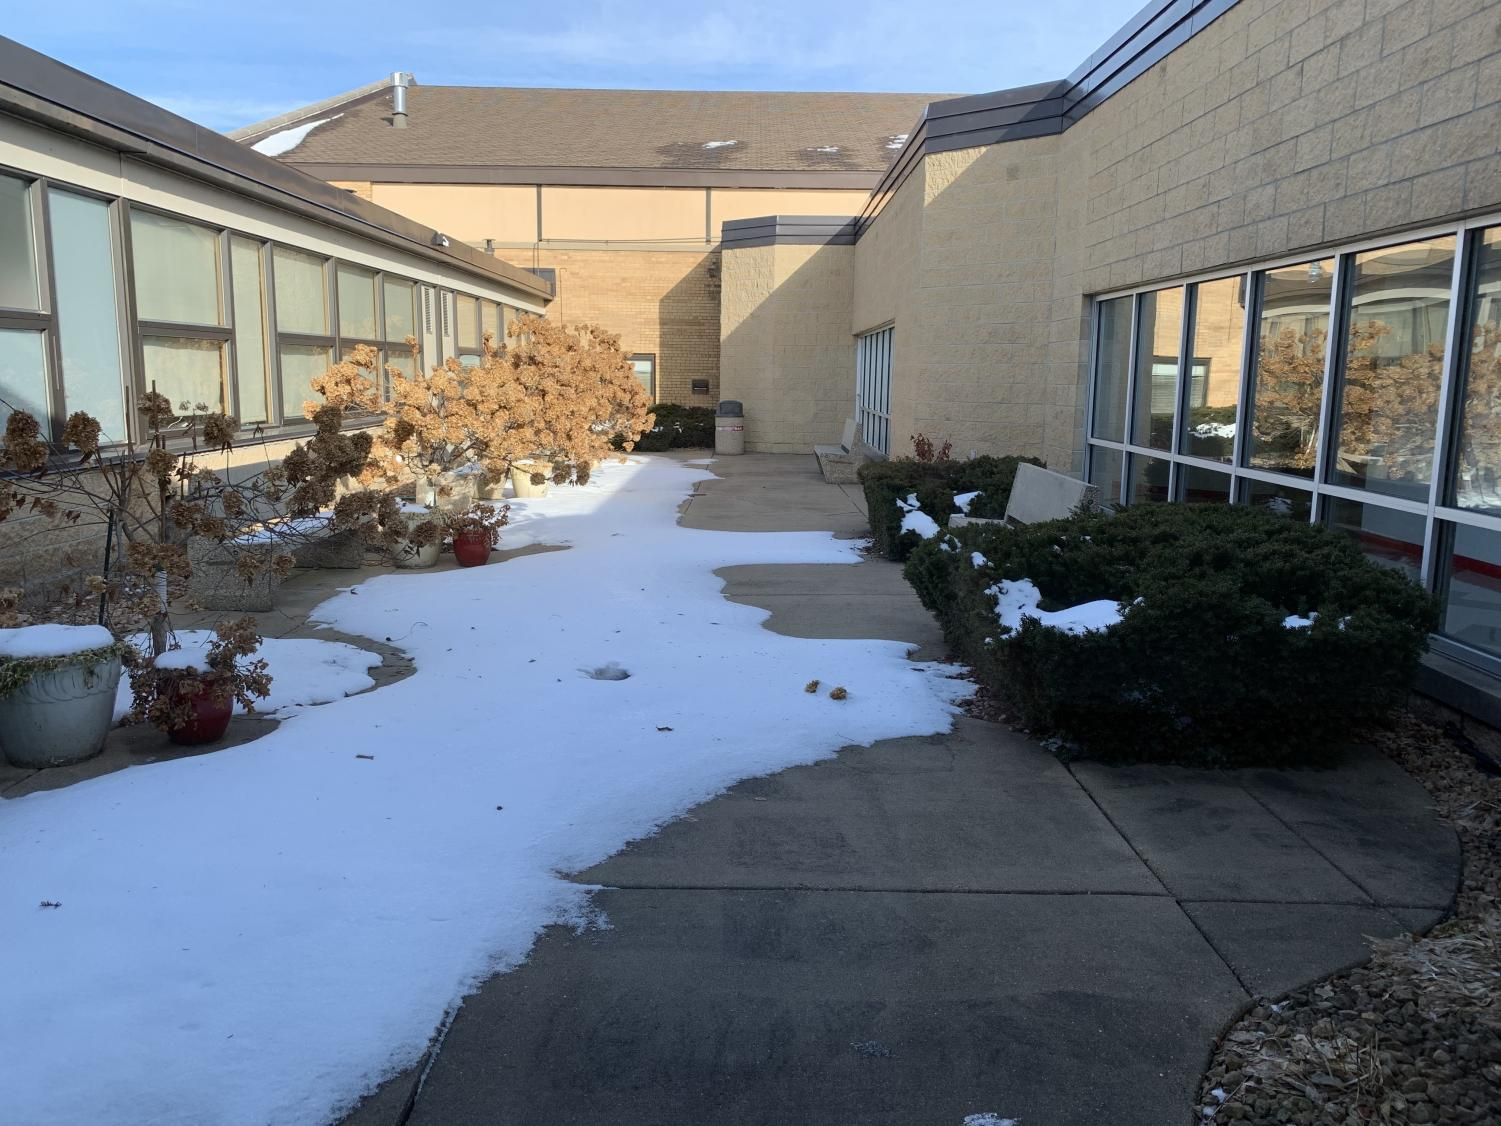 Despite the snow, the courtyard with its bushes and benches teases students who have never been allowed inside.